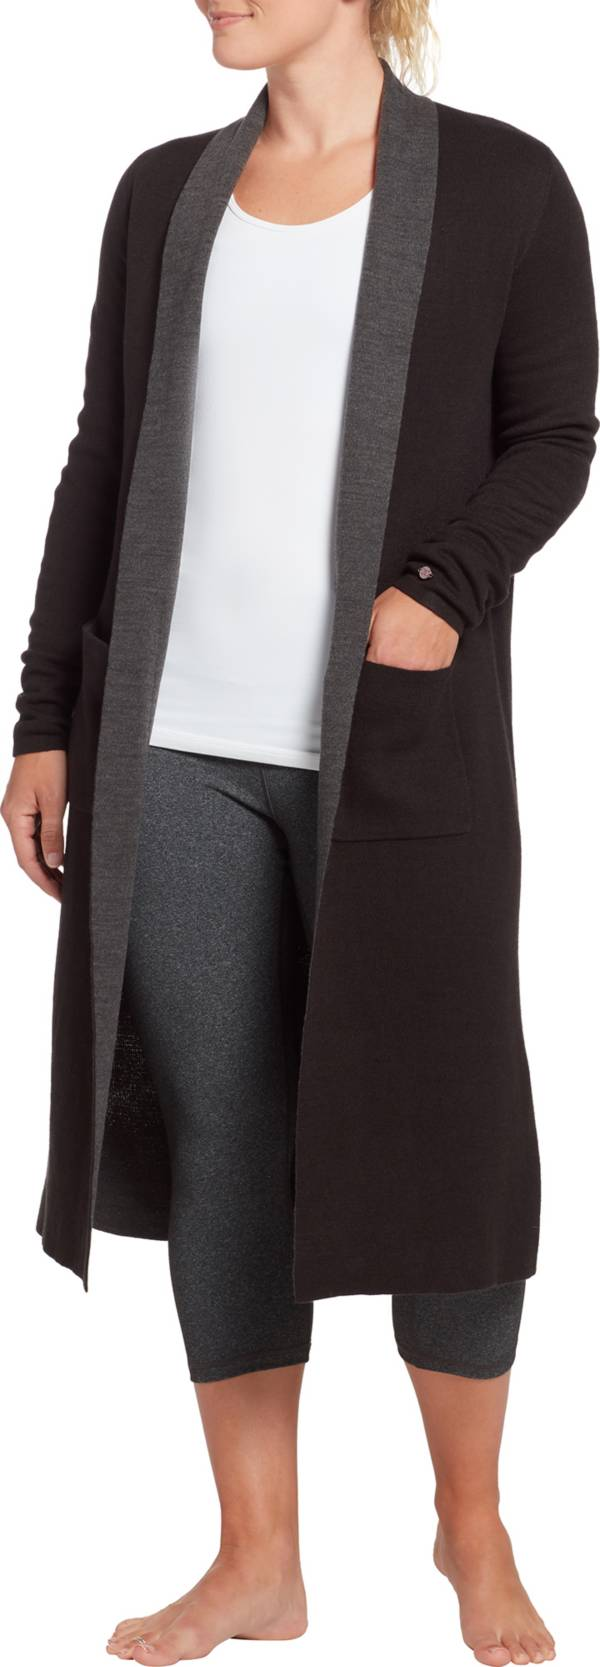 CALIA by Carrie Underwood Women's Journey Duster Cardigan product image